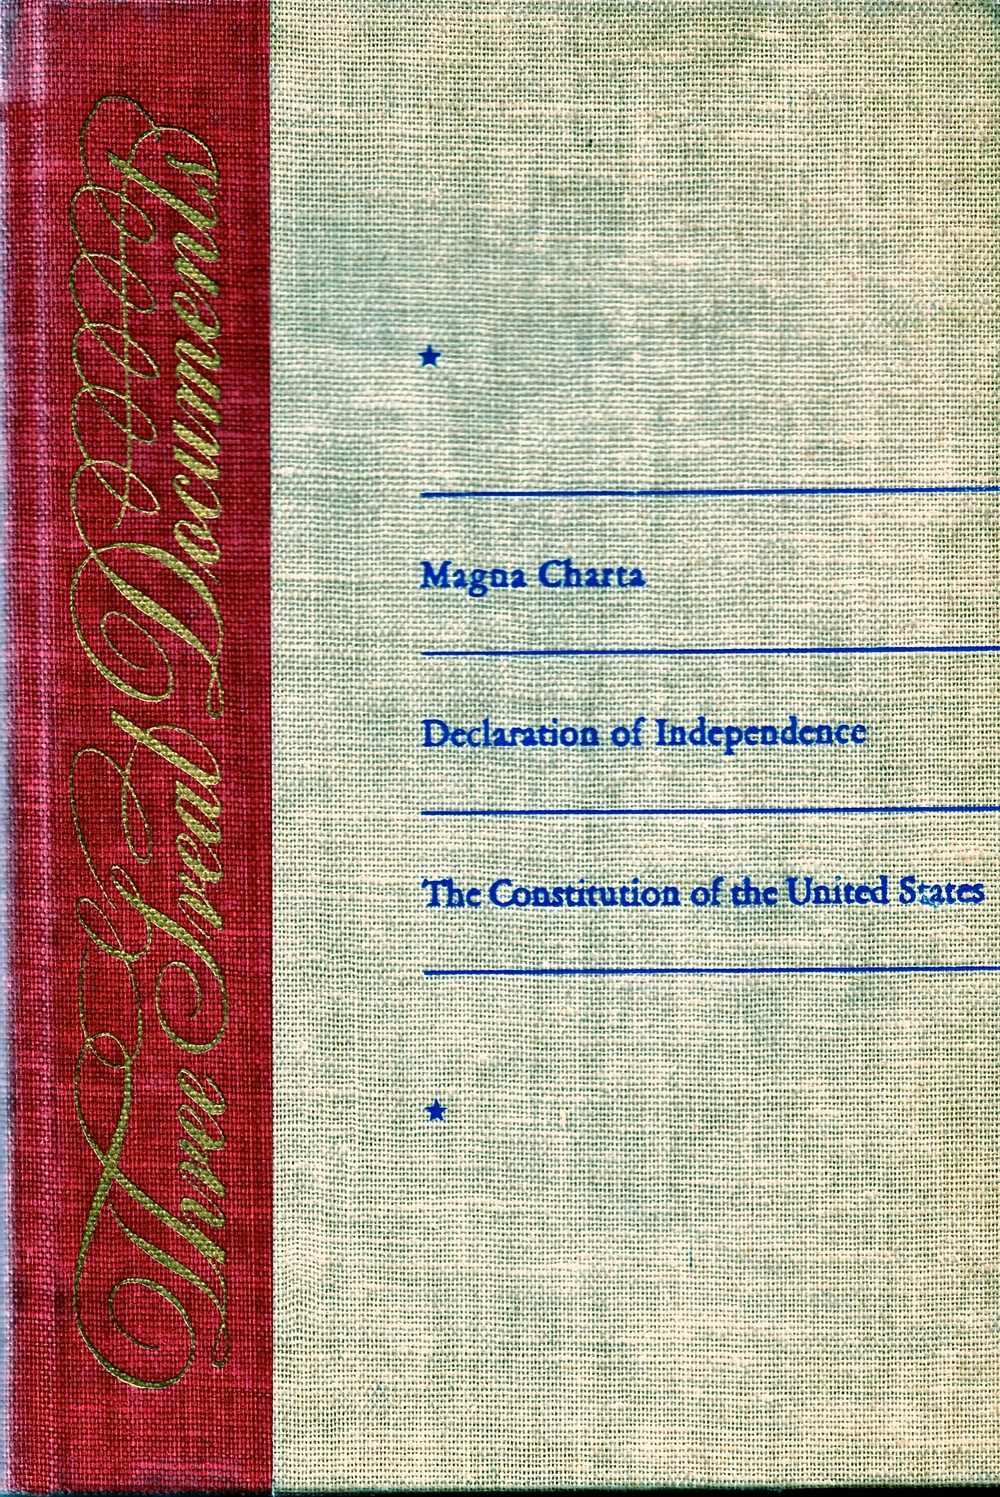 The cover of Three Great Documents.